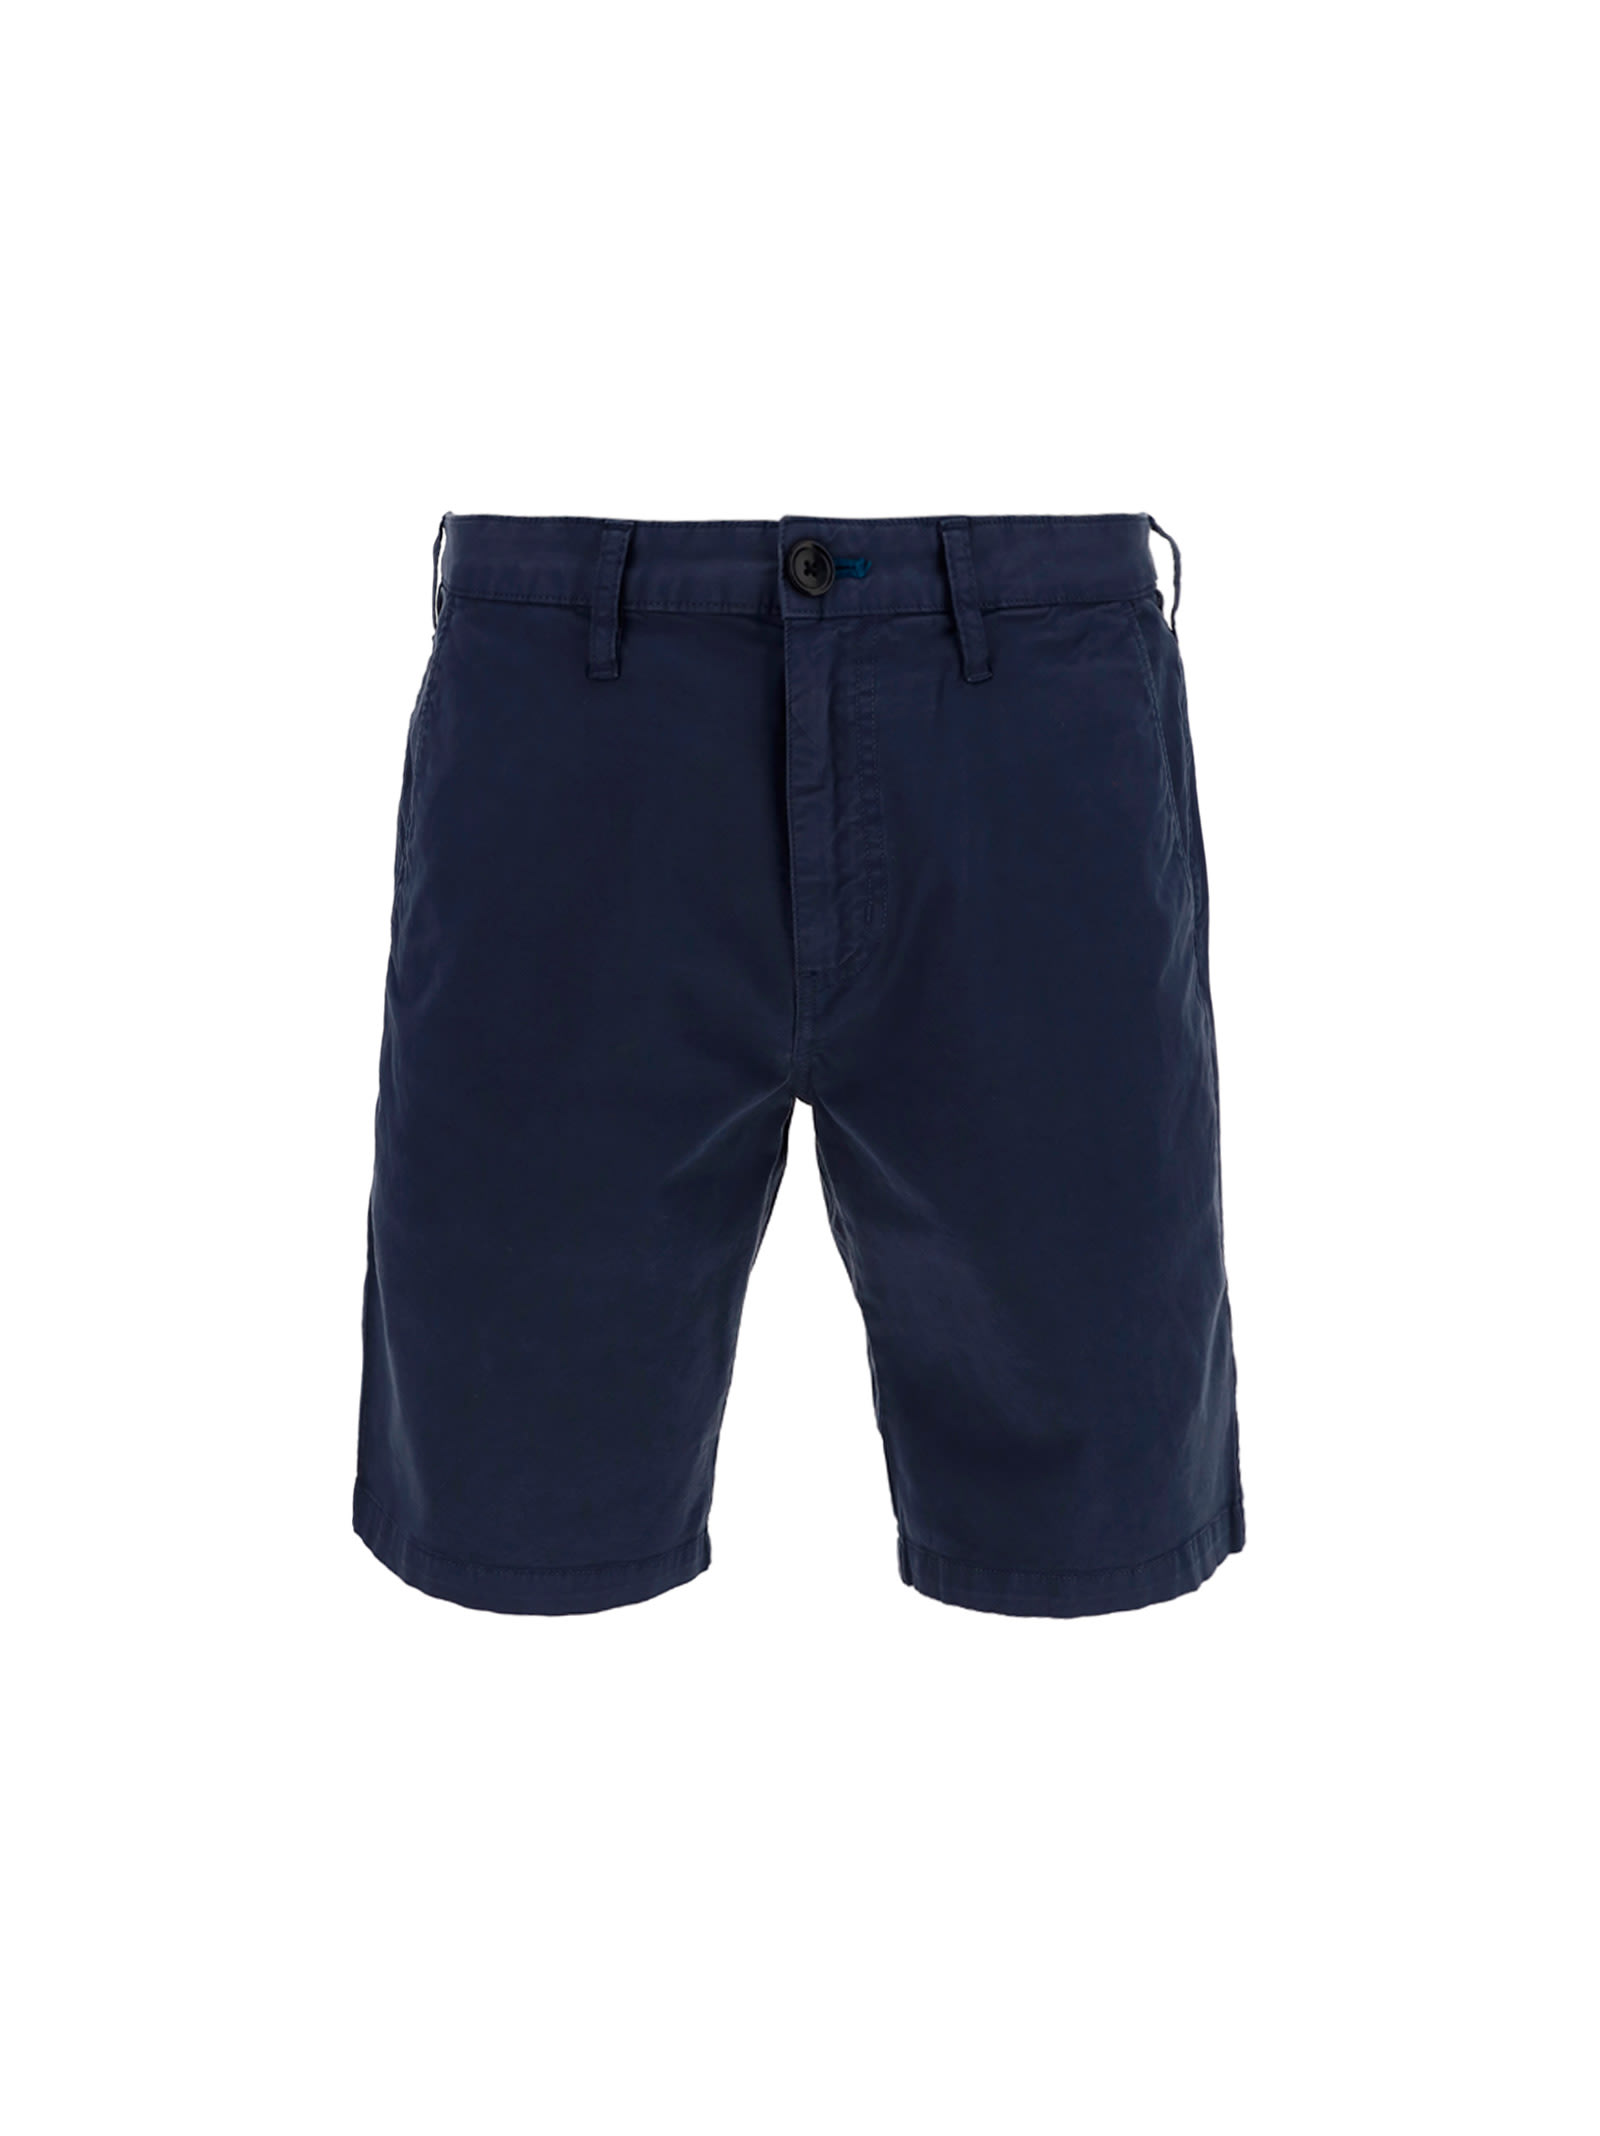 Paul Smith BERMUDA SHORTS